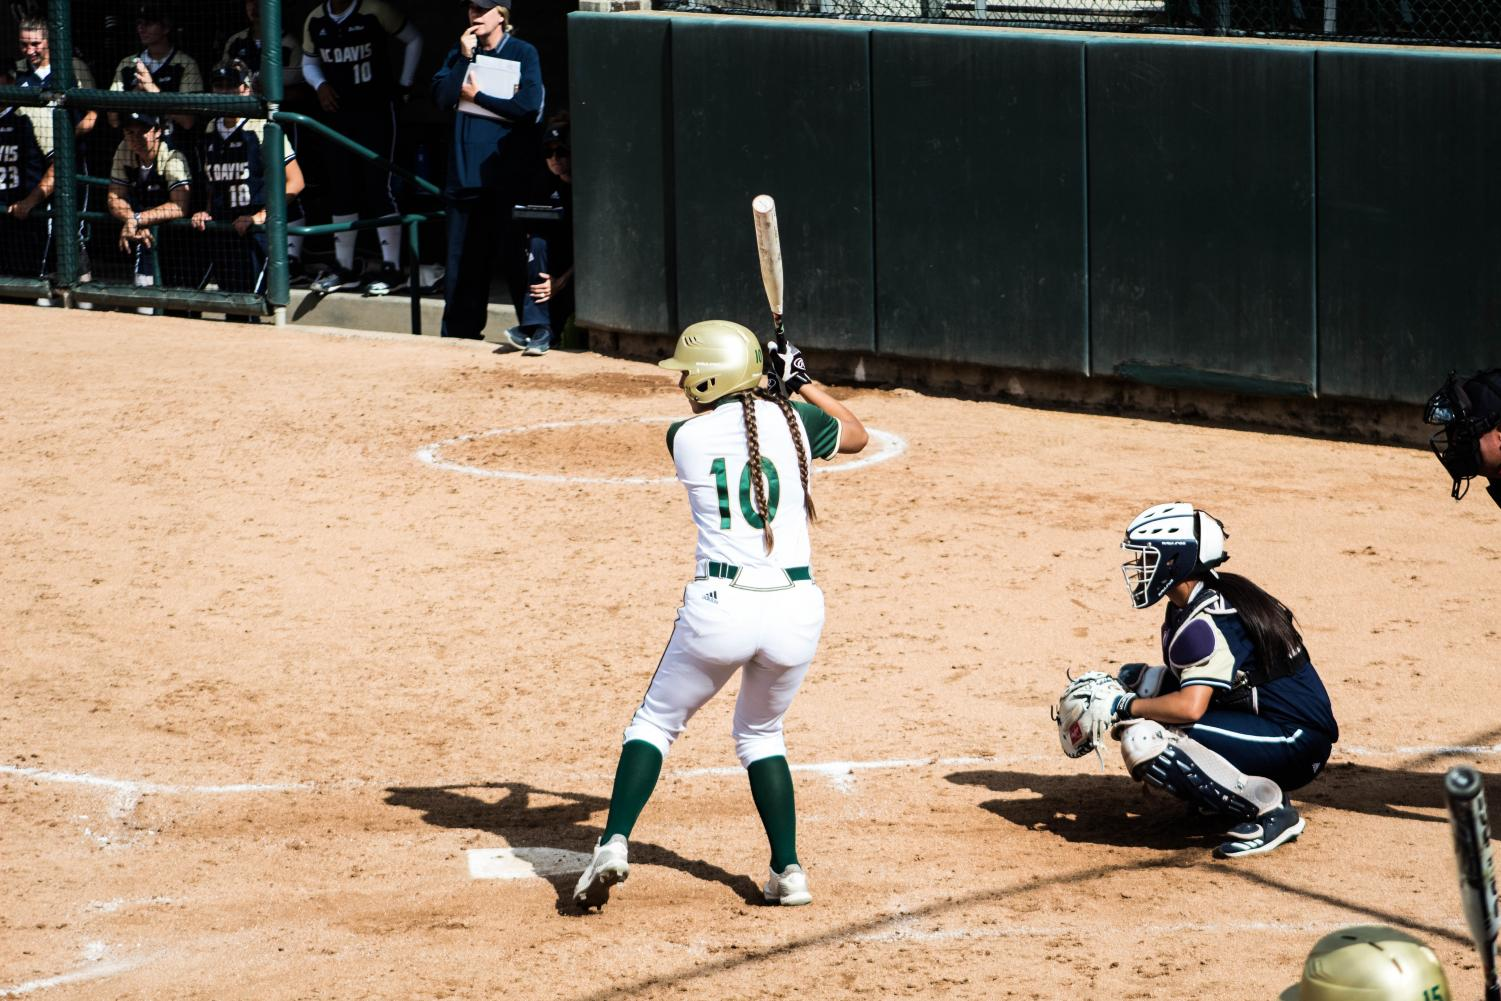 Softball player Shea Graves steps up to bat against UC Davis on Tuesday, April 30. The Hornets beat the Aggies 6-1.